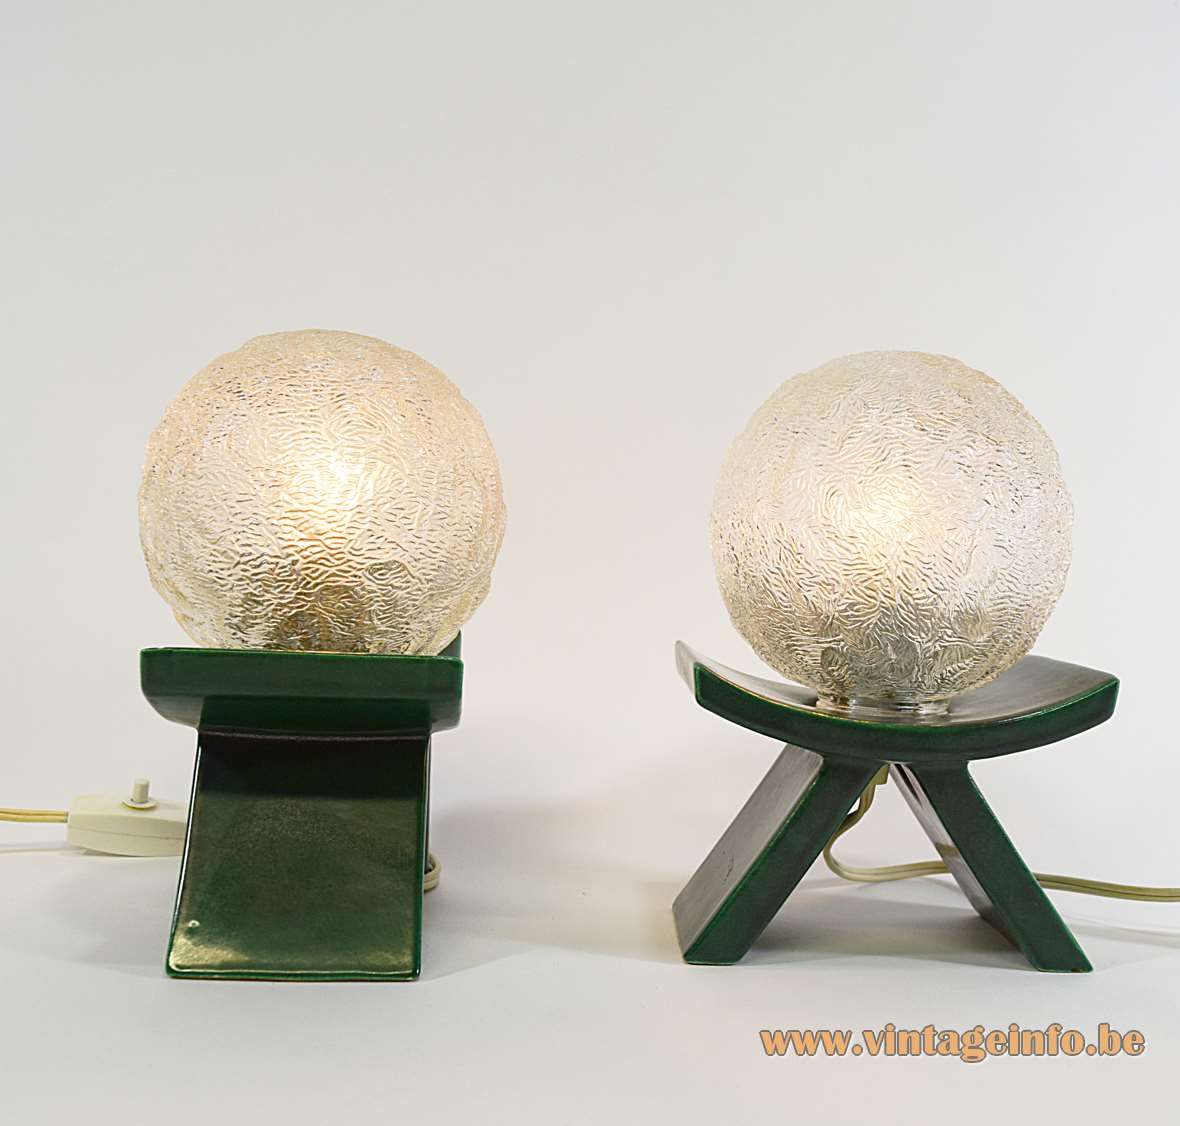 Cari Zalloni Green Bedside Table Lamps Steuler Keramik embossed glass globes 1960s 1970s MCM